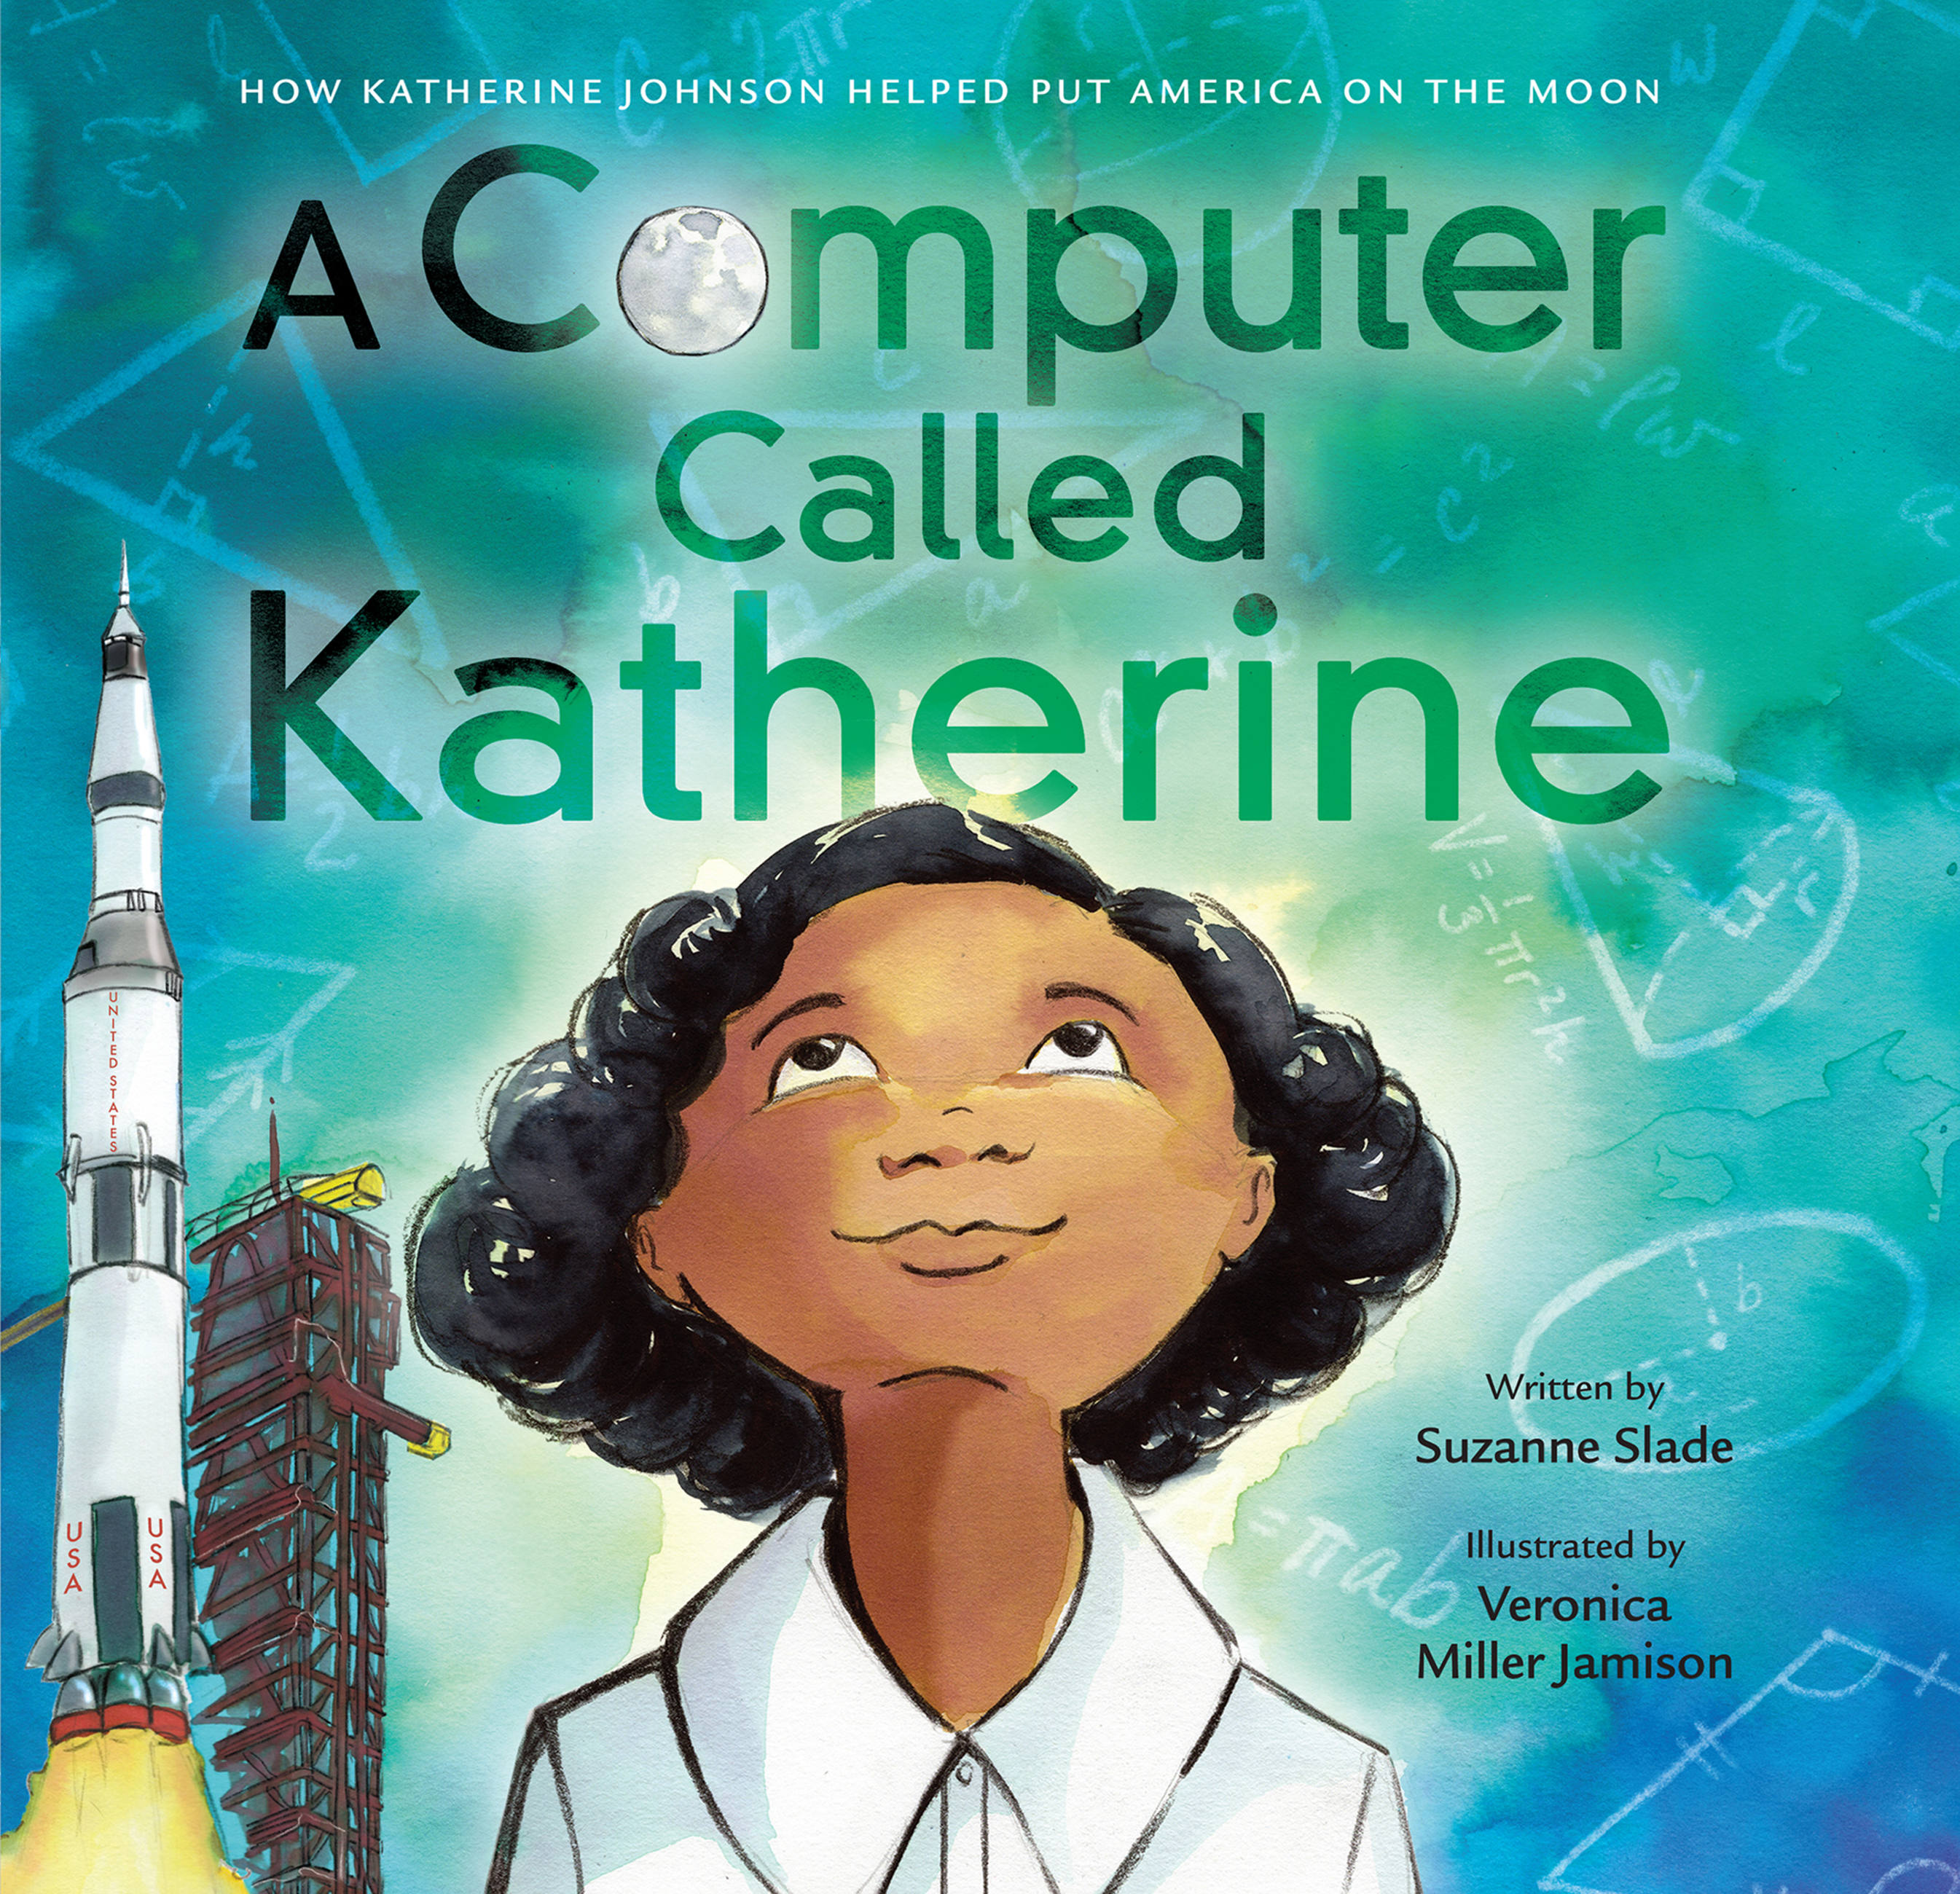 A Computer Called Katherine How Katherine Johnson Helped Put America on the Moon